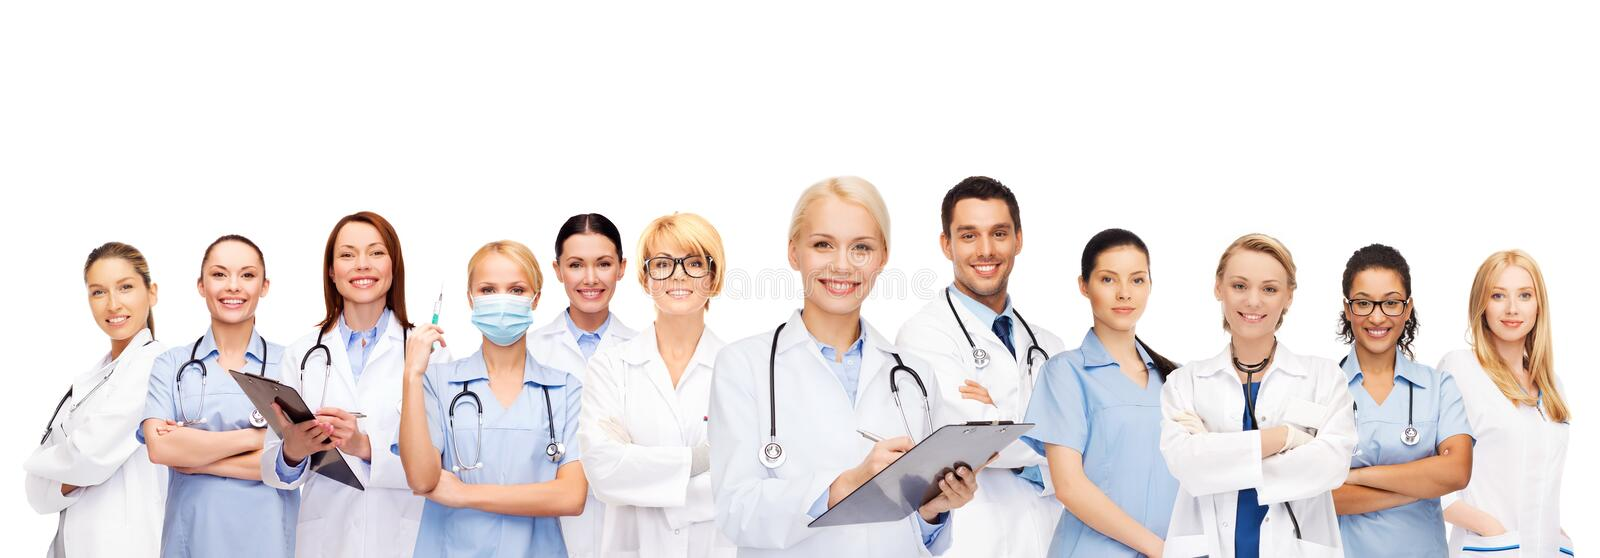 Smiling female doctors and nurses with stethoscope stock photography